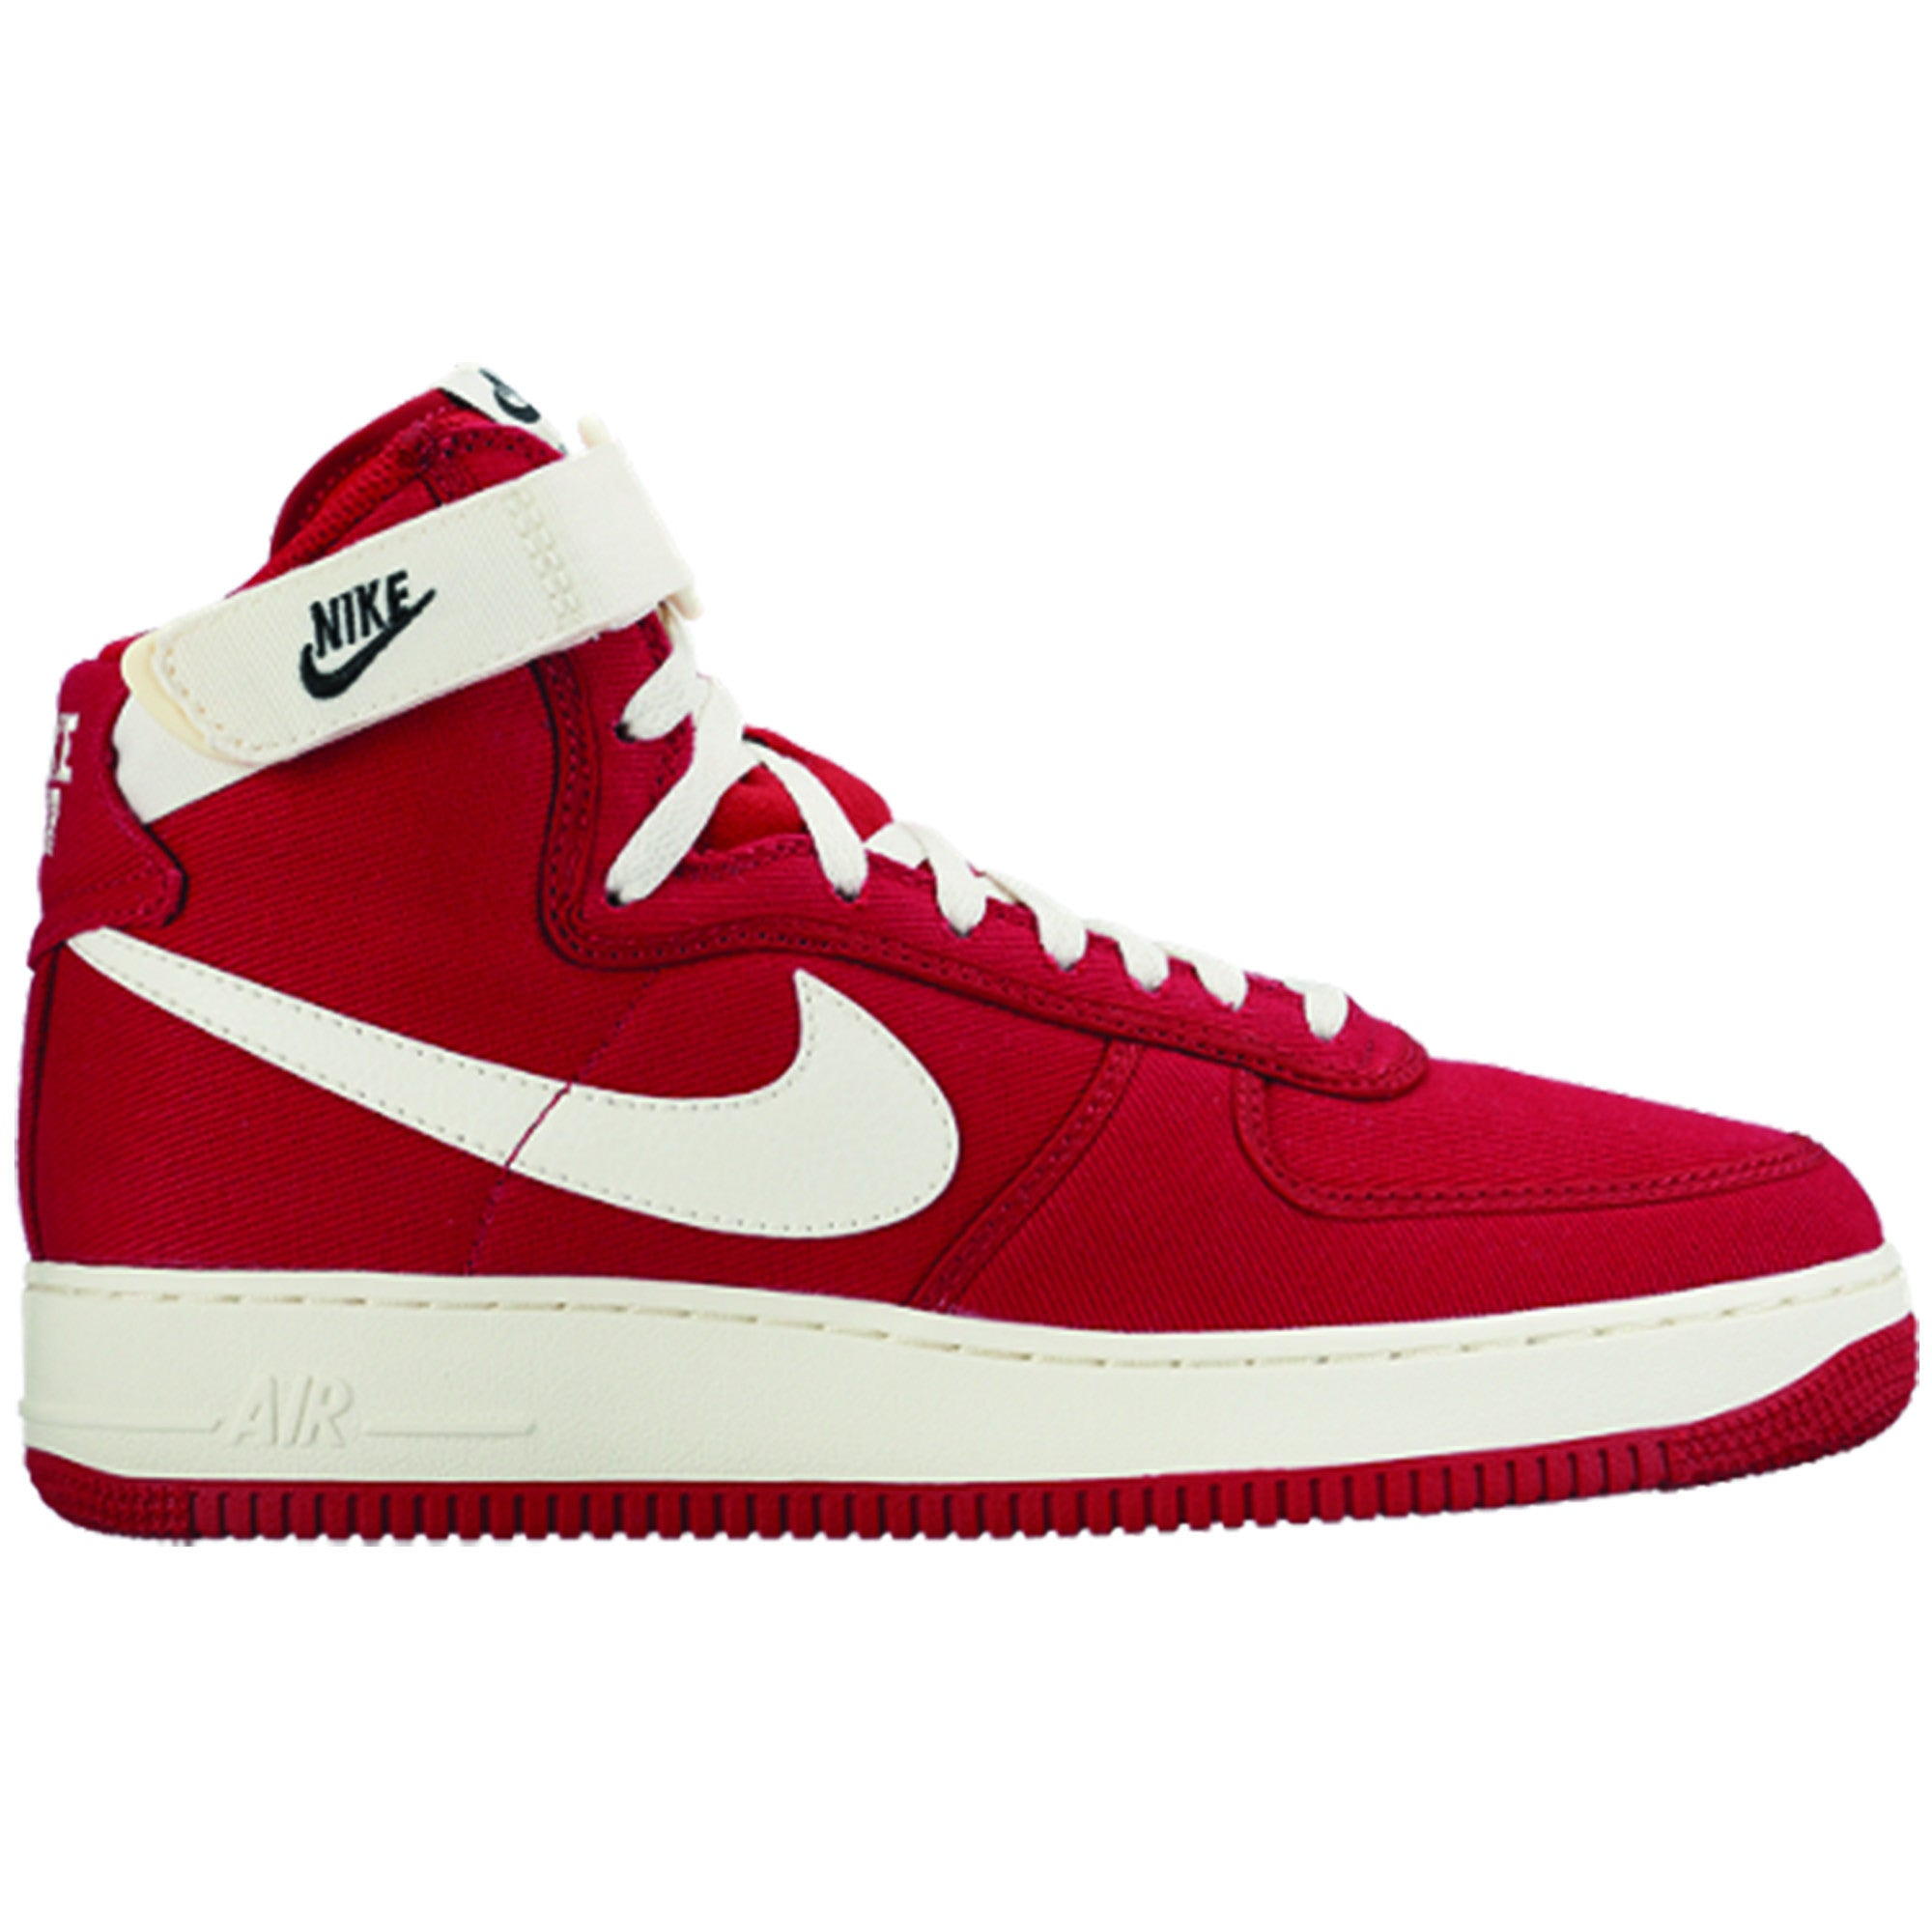 AIR FORCE 1 HIGH RETRO